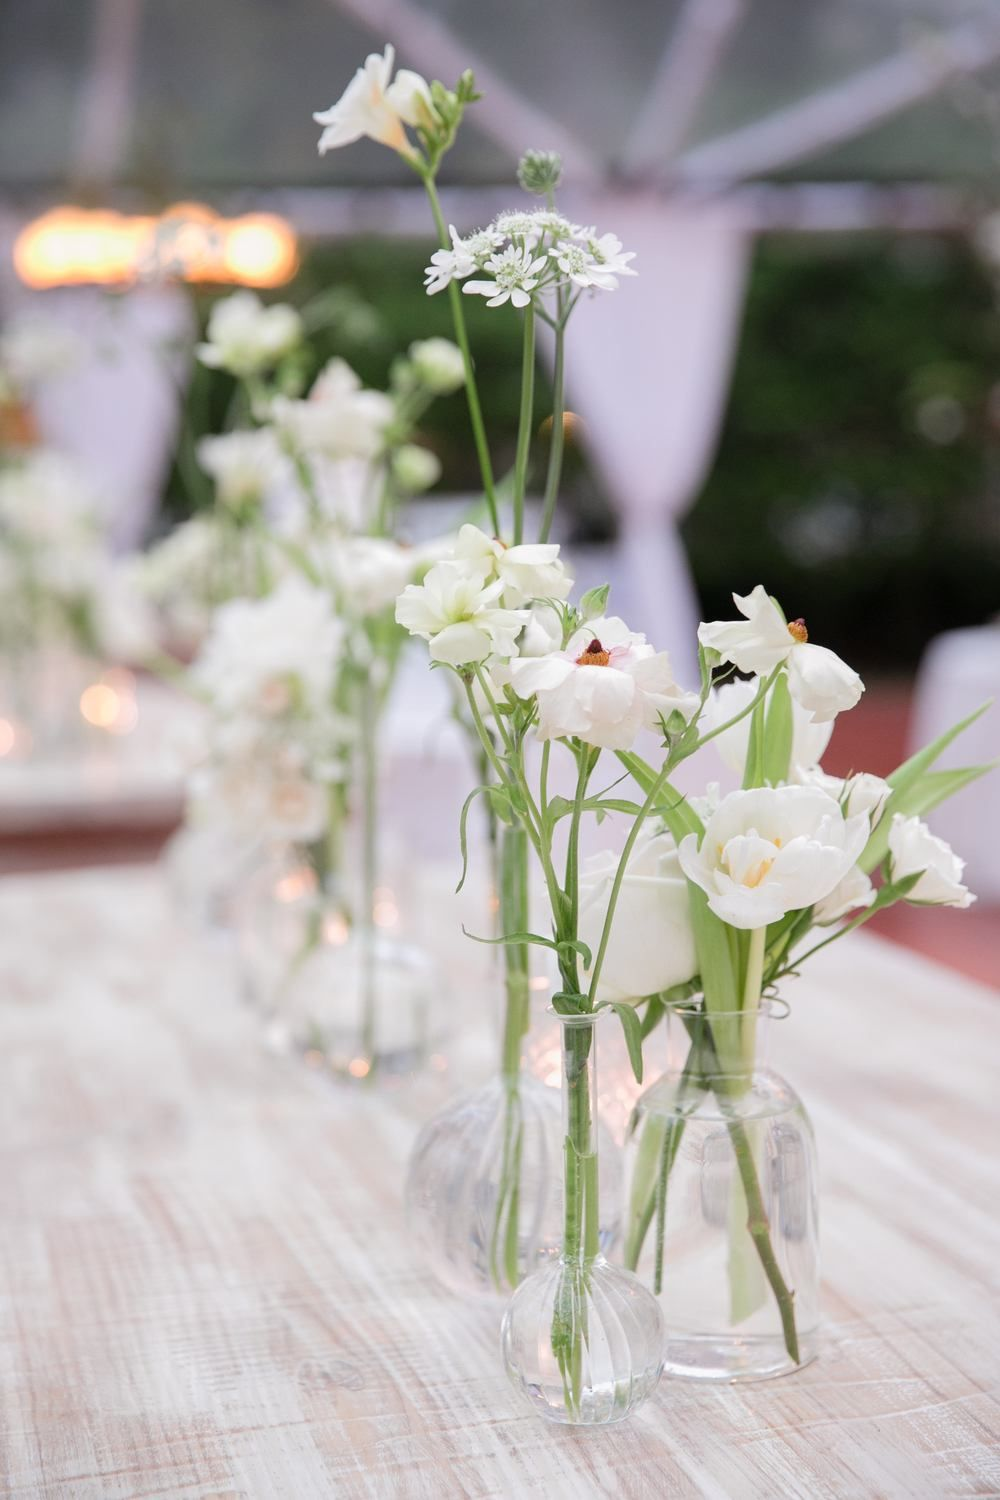 e36216b783bd This botanically-infused New Orleans wedding is the very definition of  elegance. With a lush wedding cake, custom hemstitched napkins and  mismatched beige ...